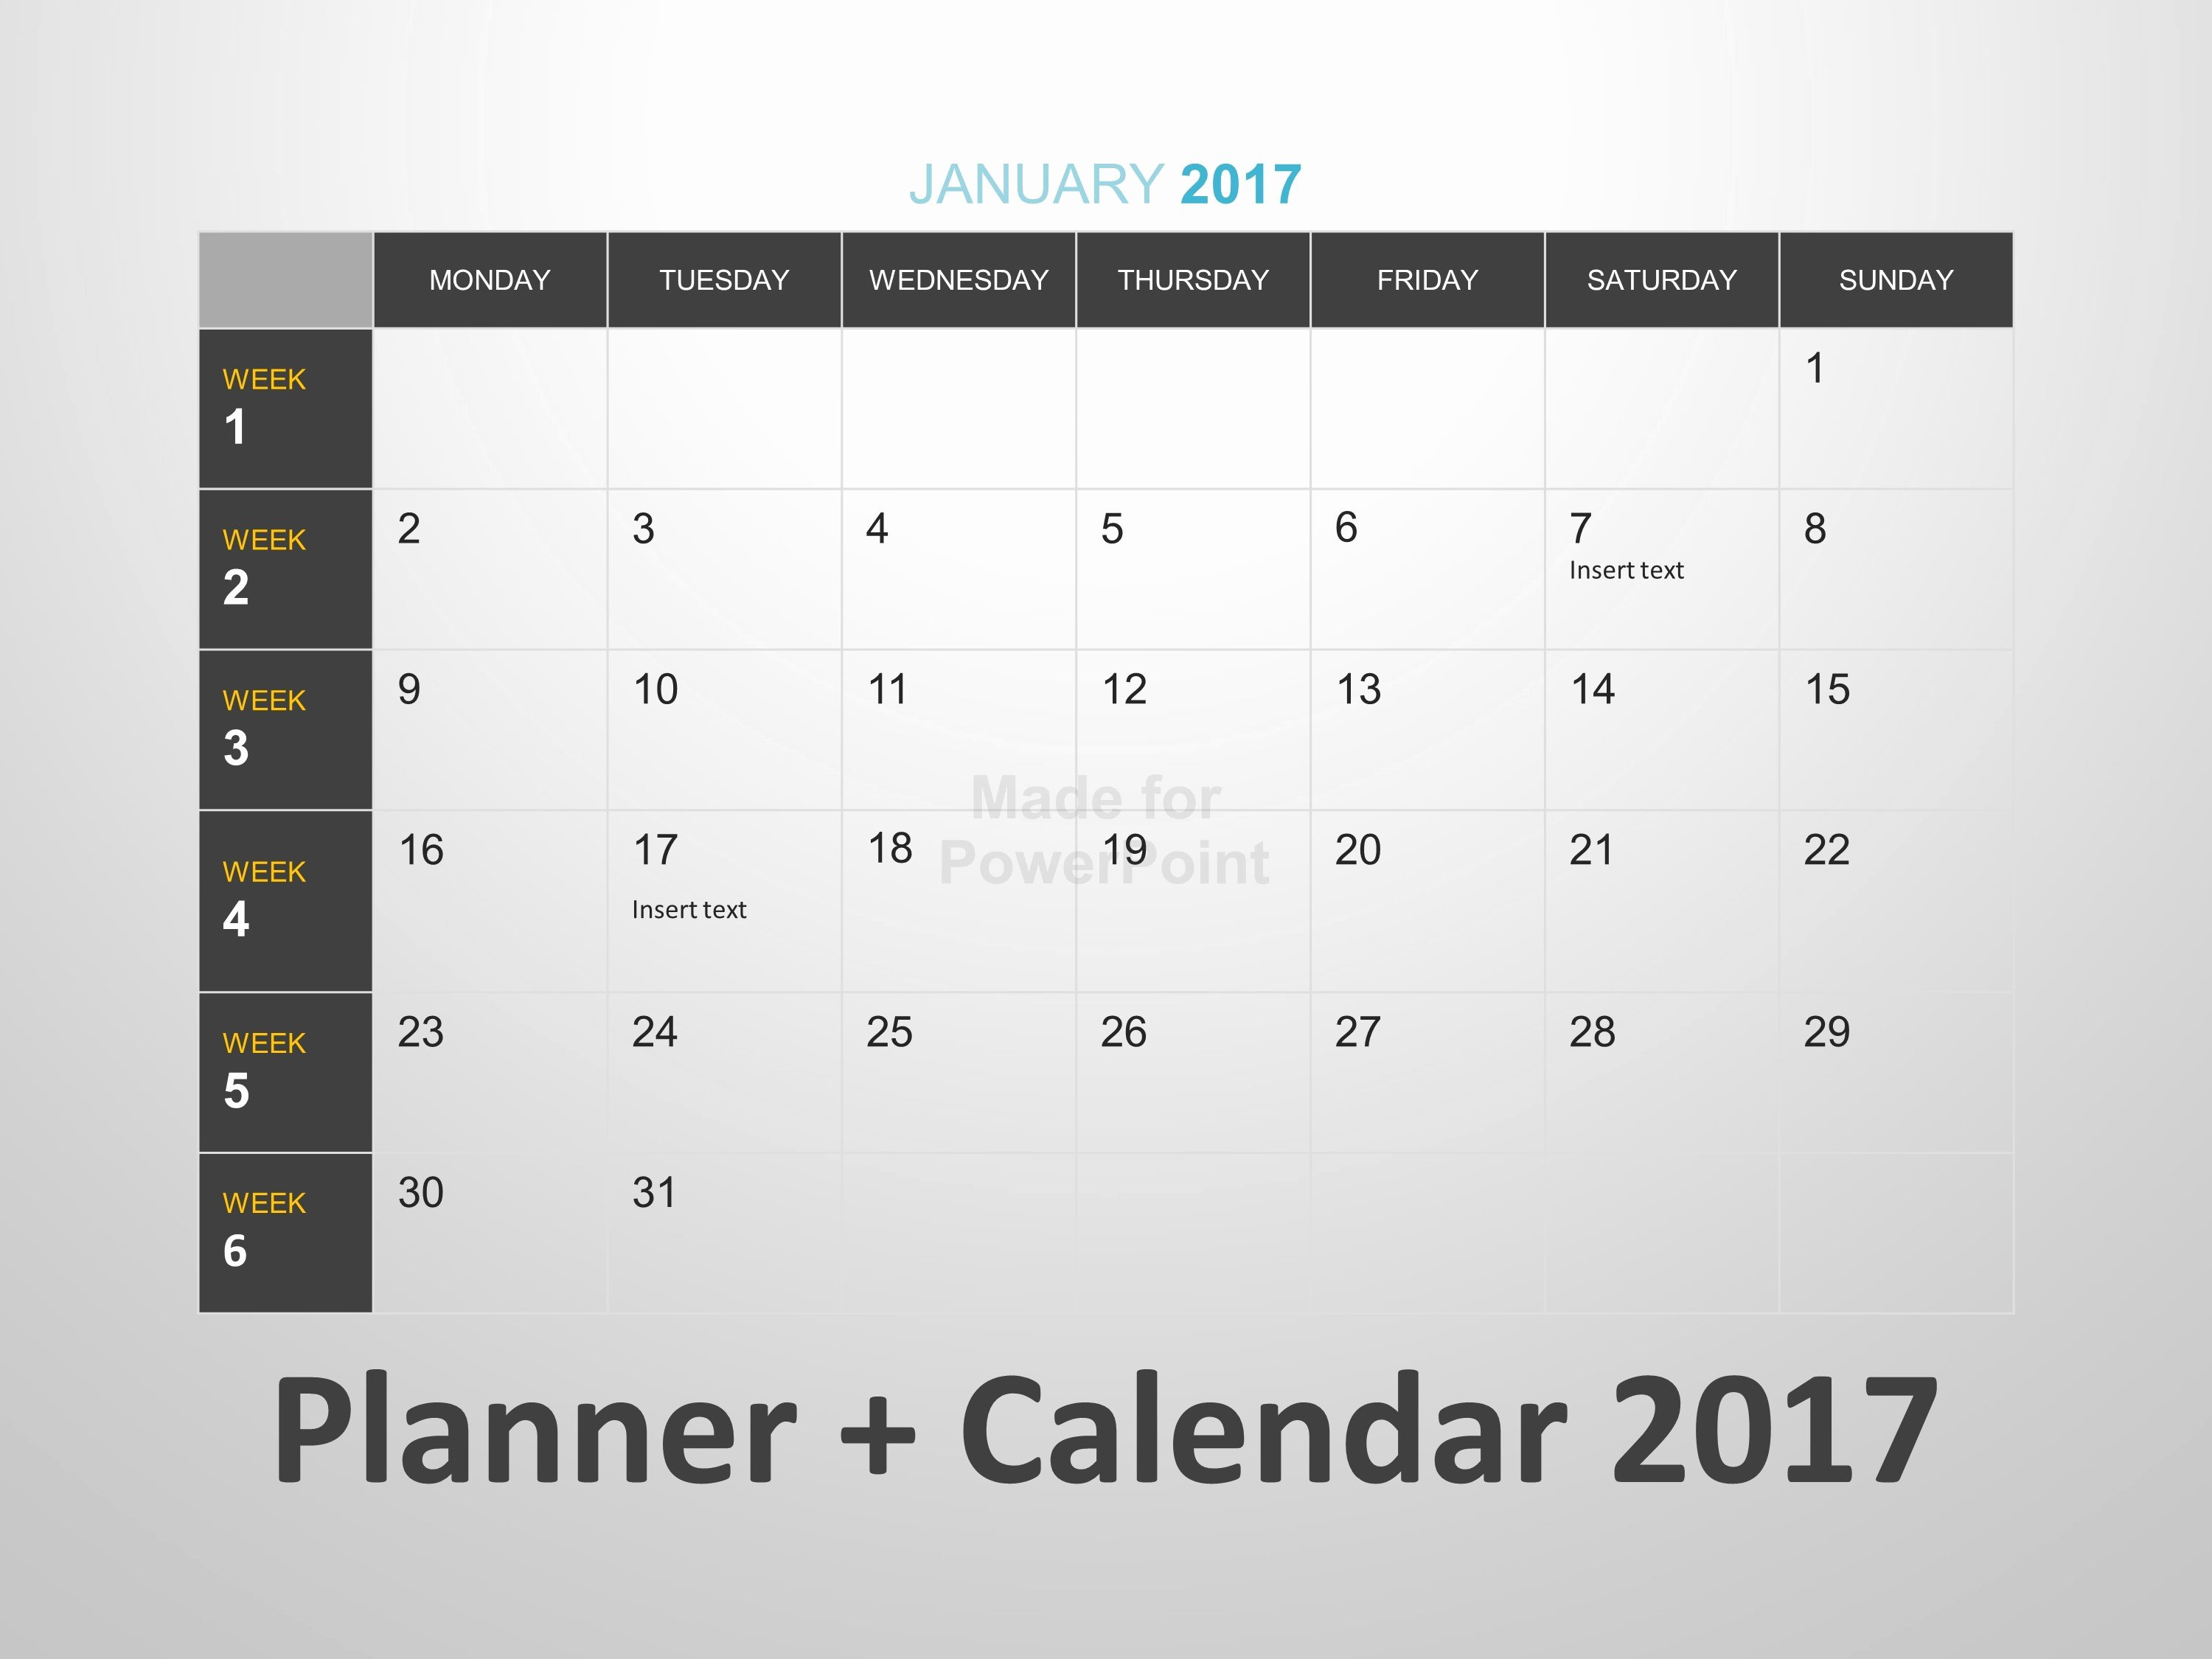 Powerpoint Calendar Template 2017 Awesome Planner Calendar Editable Powerpoint Template